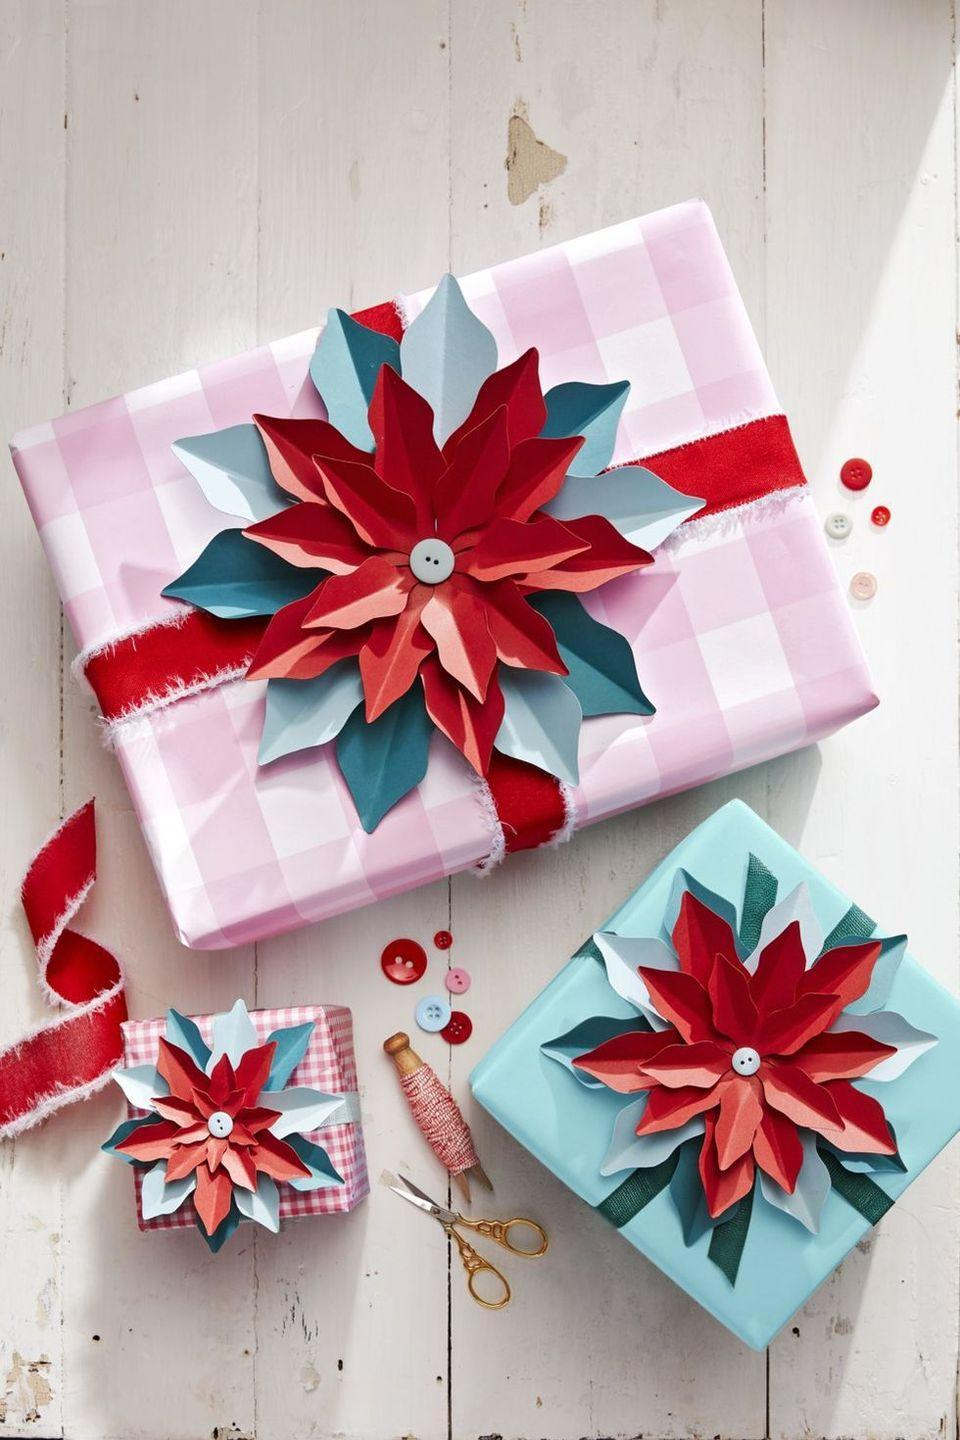 """<p>How gorgeous are those cardstock poinsettias? Not only are they a fabulous gift topper, but they look just as pretty all on their own. Bring them to life by cutting cardstock by hand (find the <a href=""""https://www.countryliving.com/diy-crafts/how-to/a3266/christmas-craft-templates/"""" rel=""""nofollow noopener"""" target=""""_blank"""" data-ylk=""""slk:template"""" class=""""link rapid-noclick-resp"""">template</a> here), then secure with a button and finish with a fringed ribbon.</p><p><a class=""""link rapid-noclick-resp"""" href=""""https://www.amazon.com/Neenah-Creative-Collection-Specialty-Cardstock/dp/B003A2I4V2?tag=syn-yahoo-20&ascsubtag=%5Bartid%7C10050.g.645%5Bsrc%7Cyahoo-us"""" rel=""""nofollow noopener"""" target=""""_blank"""" data-ylk=""""slk:SHOP CARDSTOCK"""">SHOP CARDSTOCK</a></p>"""